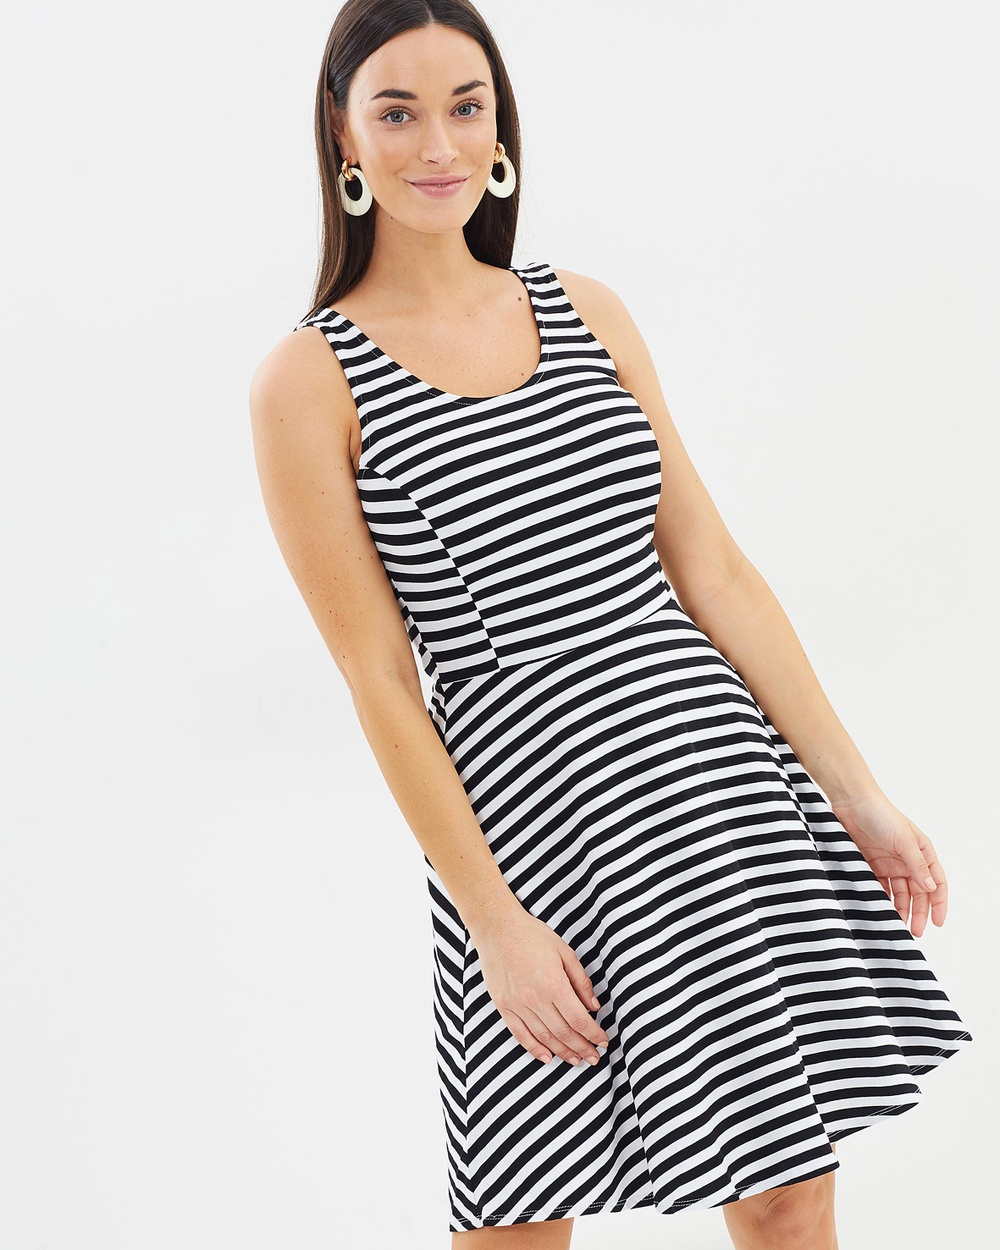 Dorothy Perkins Stripe Seam Fit And Flare Dress Dresses Black & White Stripe Seam Fit And Flare Dress